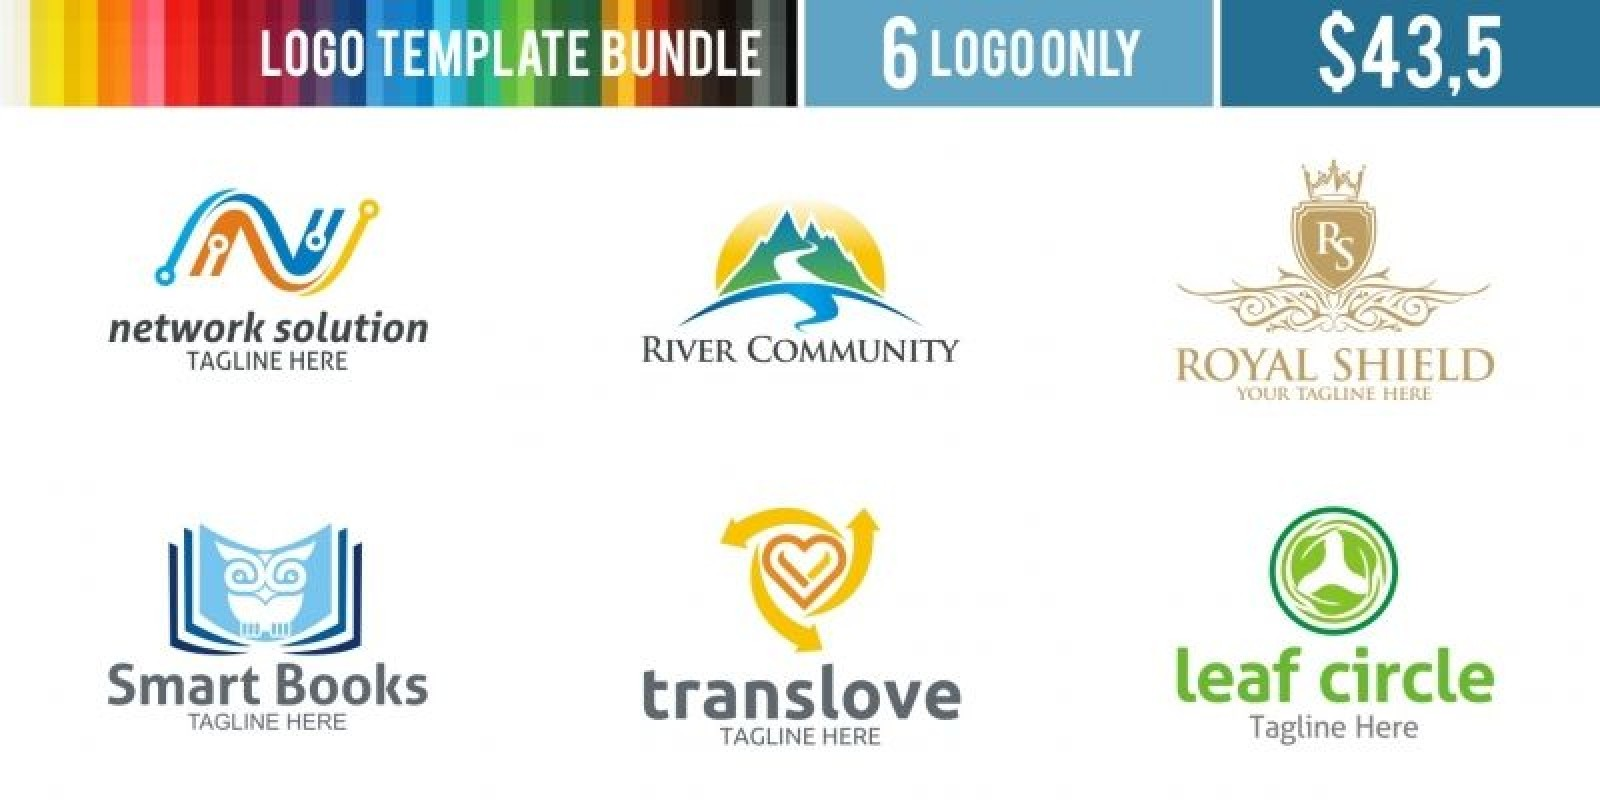 Logo Templates Bundle #6